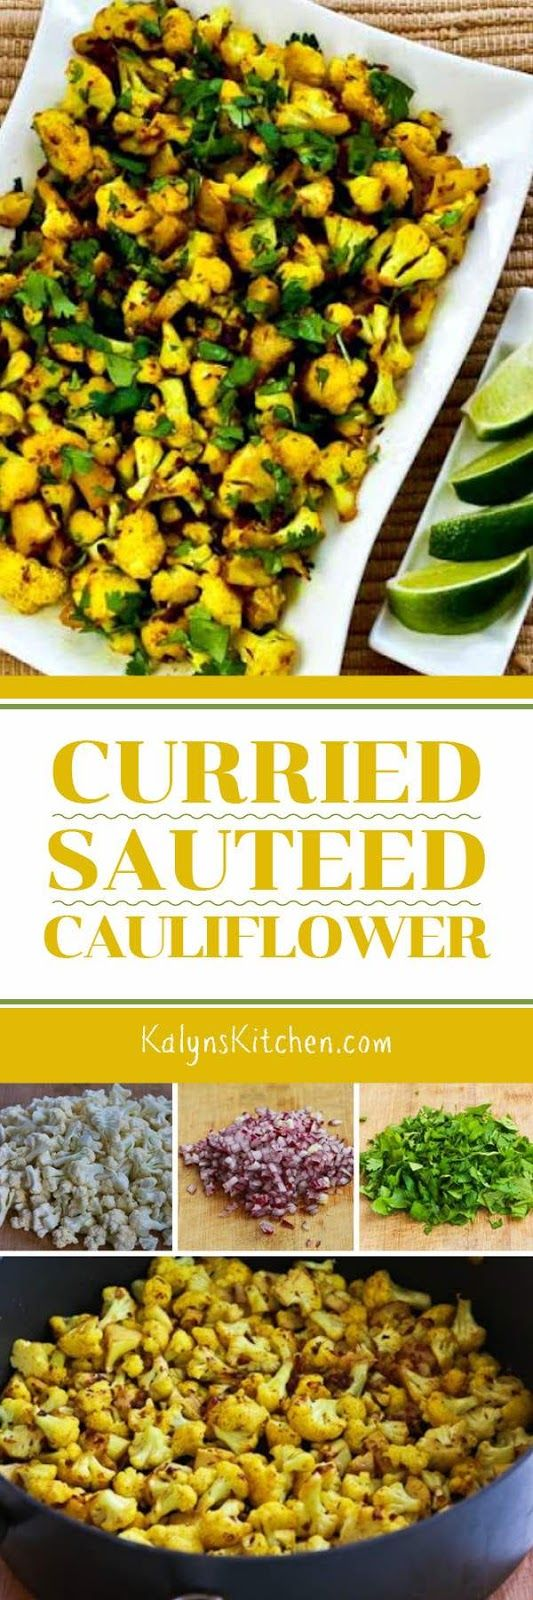 Curried Sauteed Cauliflower is inspired by a famous Indian street food recipe, and this tasty way to cook cauliflower is low-carb, gluten-free, dairy-free, Paleo, Whole 30, vegan, South Beach Diet Phase One, and perfect for Meatless Monday! [found on Kaly